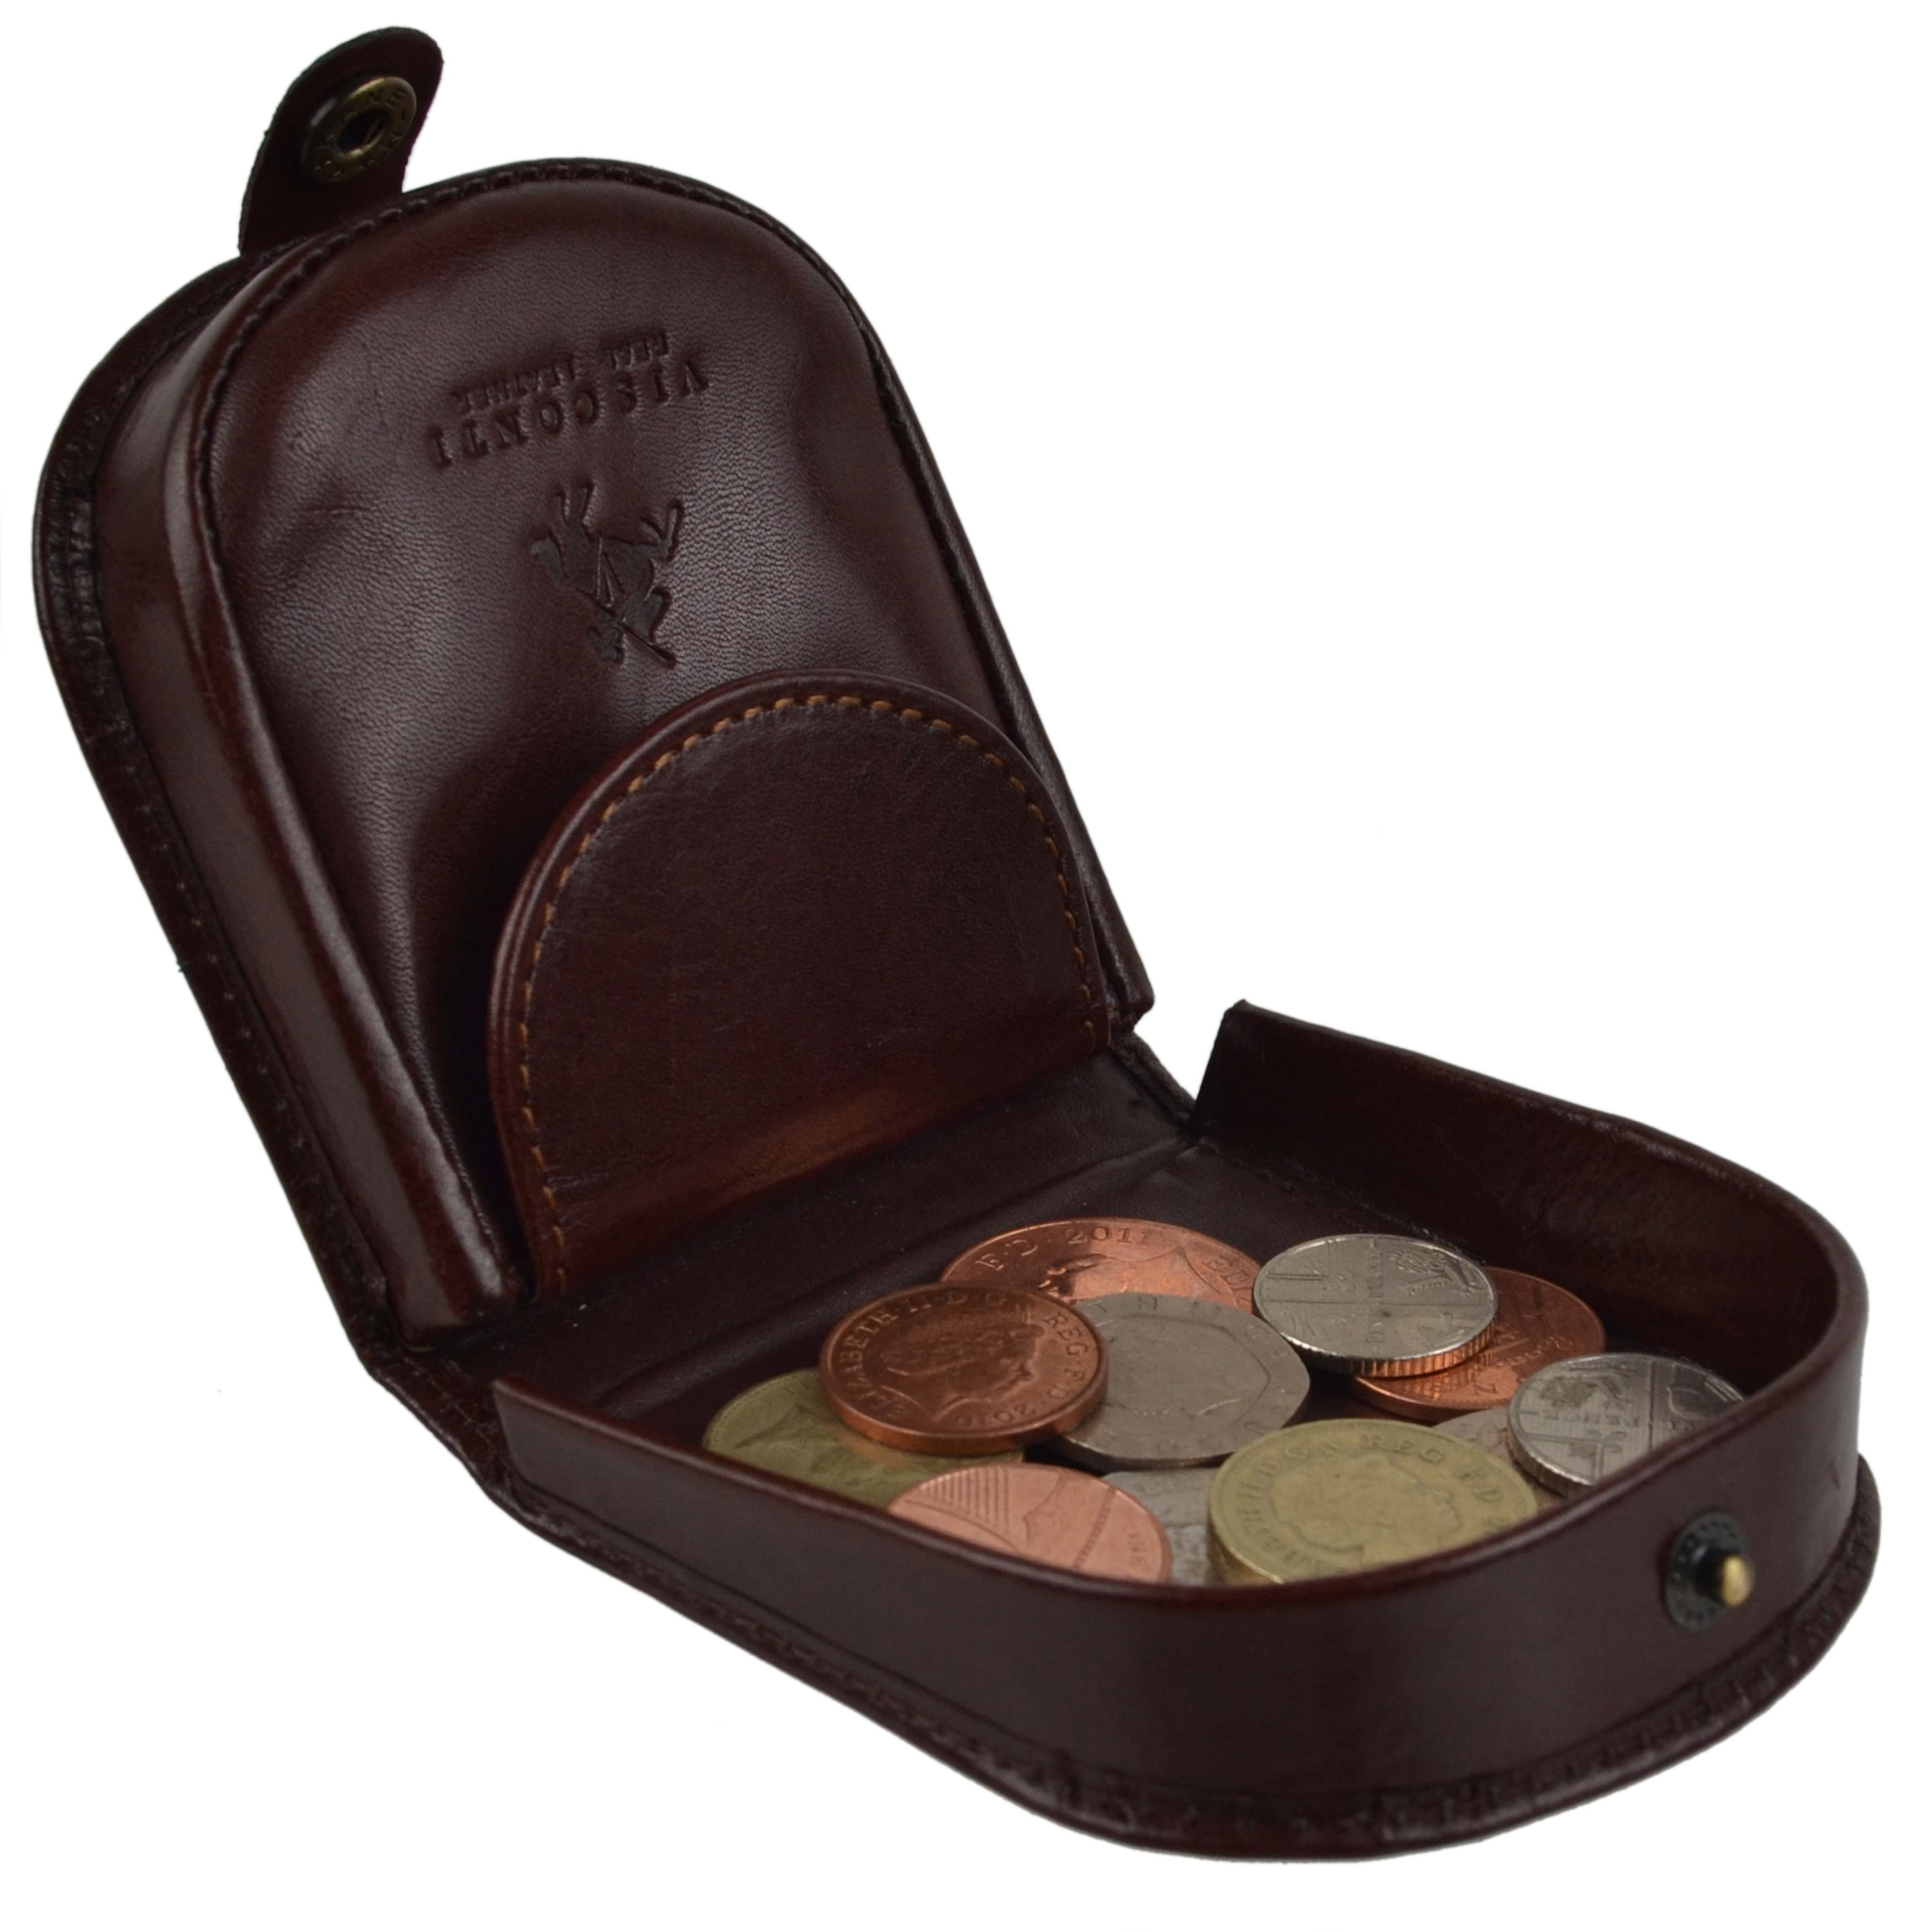 thumbnail 19 - Mens-Classic-Leather-Tabbed-Coin-Tray-by-Visconti-Monza-Collection-Gift-Boxed